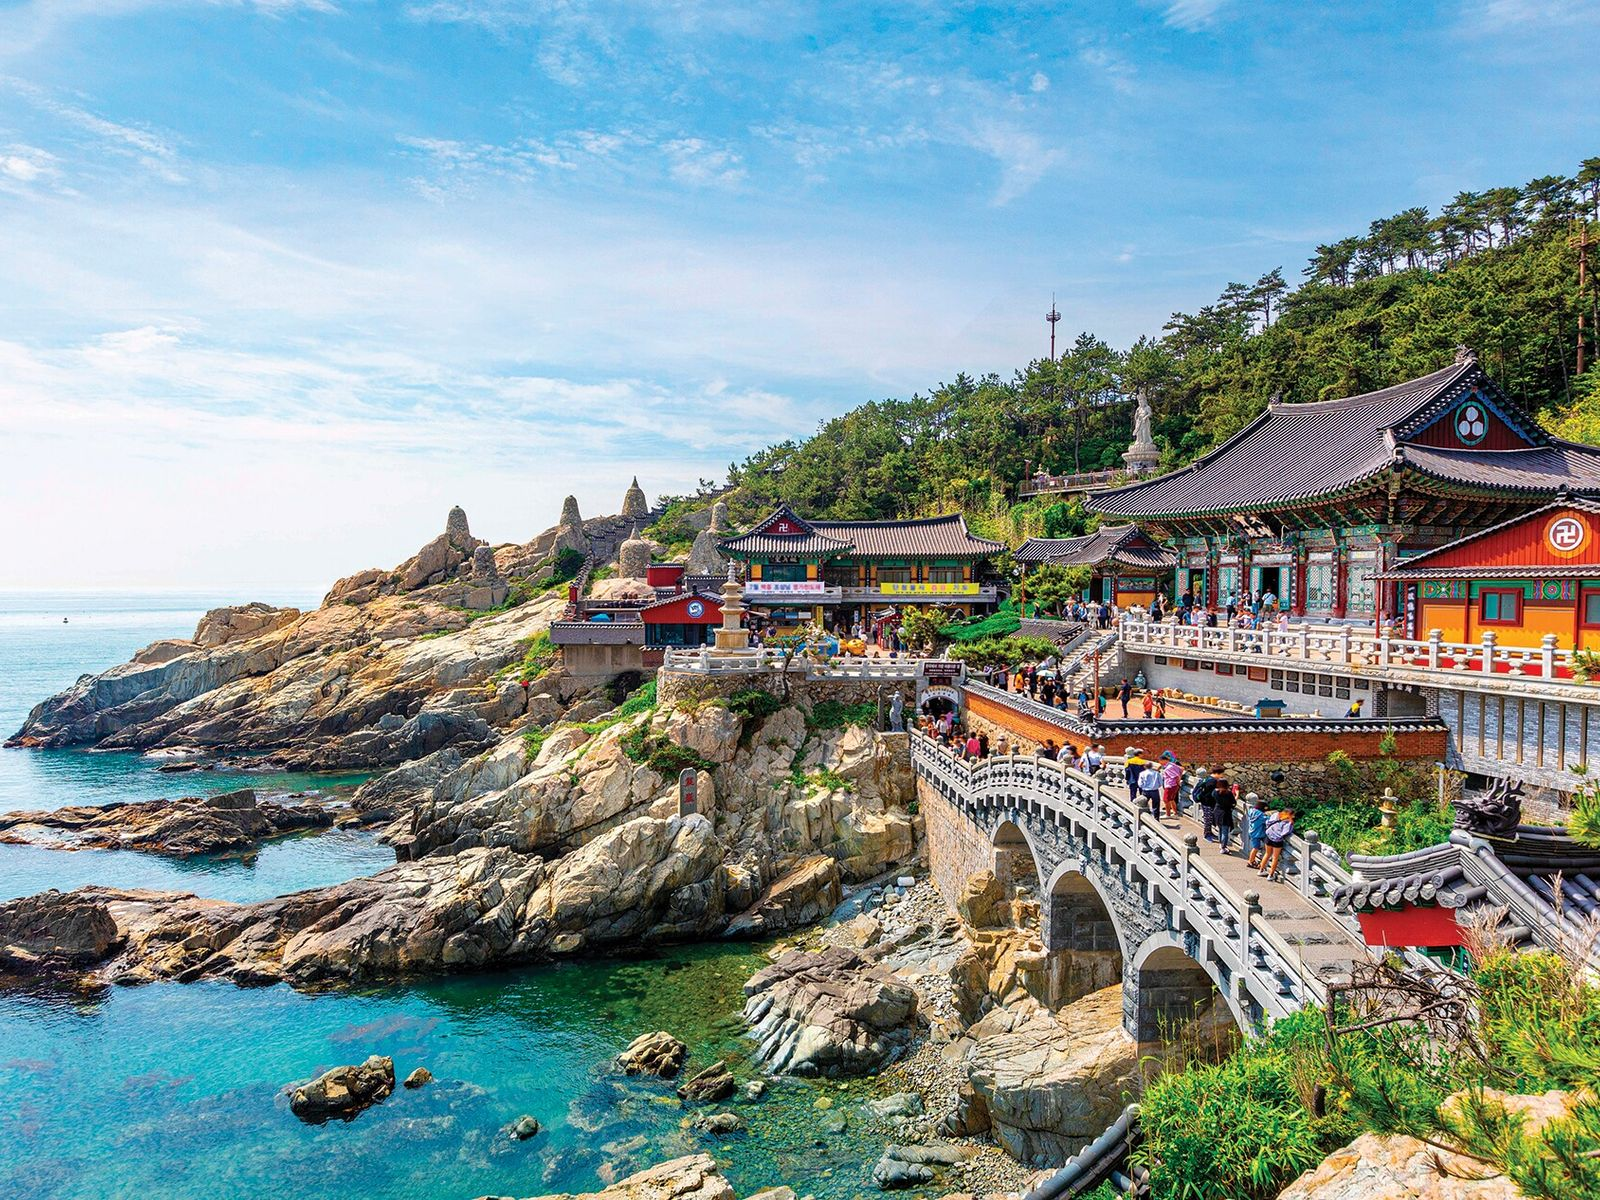 From its rocky perch above the shore, Haedong Yonggung Temple watches over the East Sea like ...